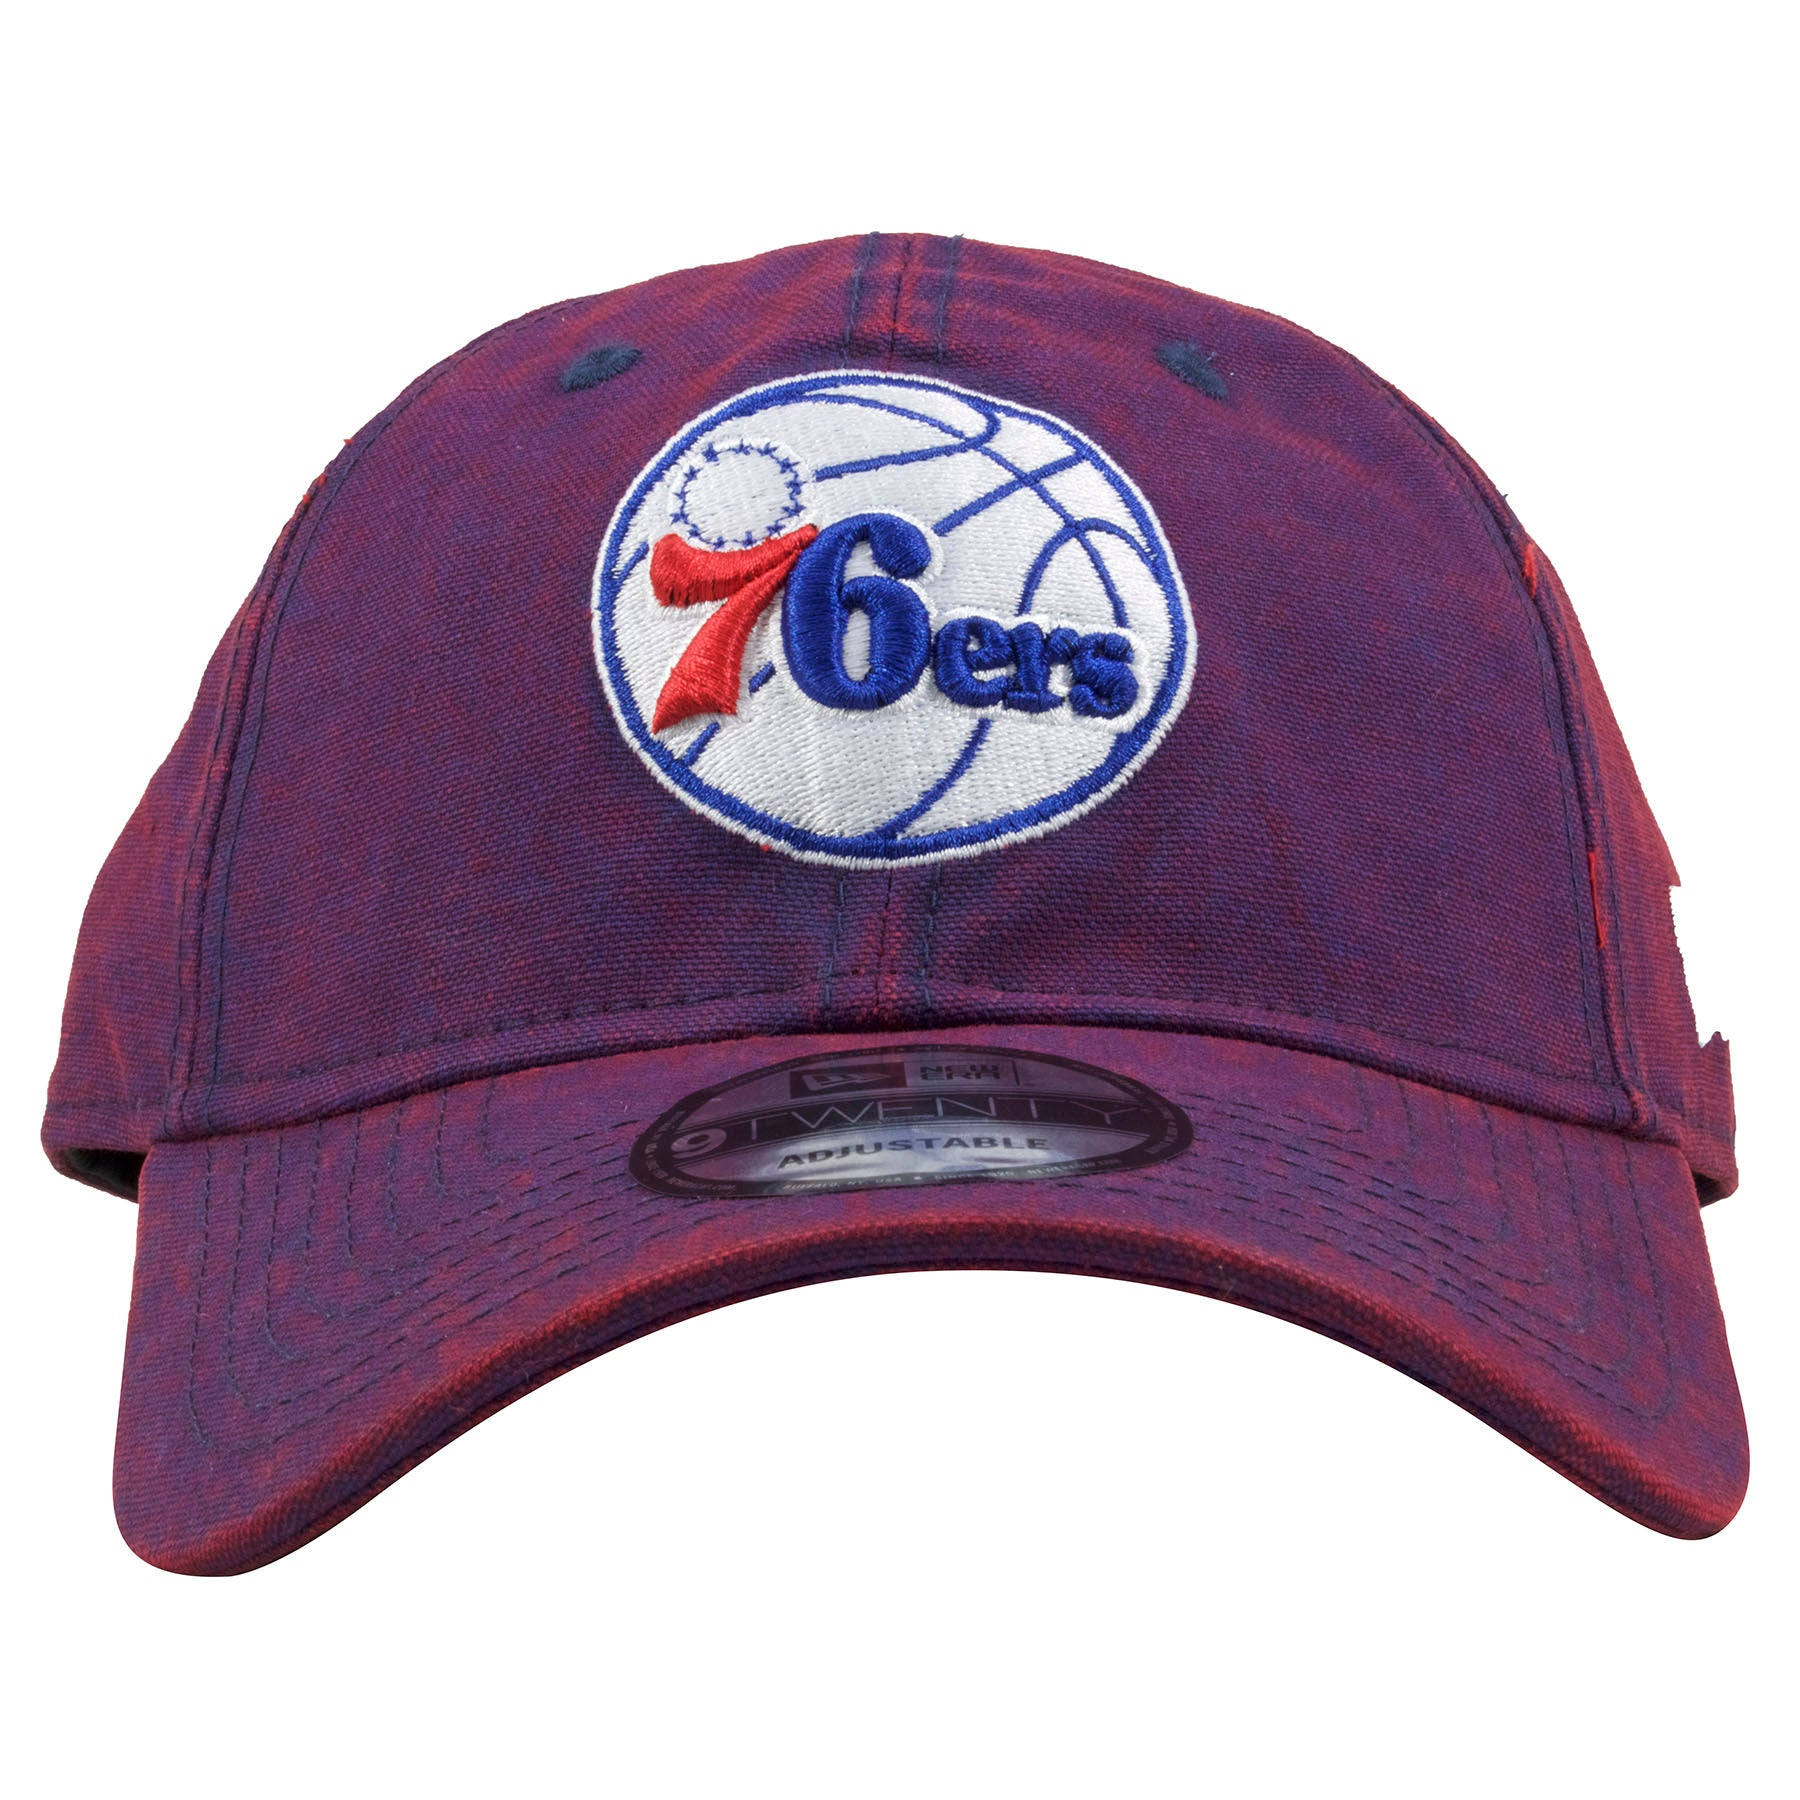 huge discount edc65 217c1 the front of the Philadelphia 76ers purple hue dad hat is the Philadelphia  76ers logo embroidered